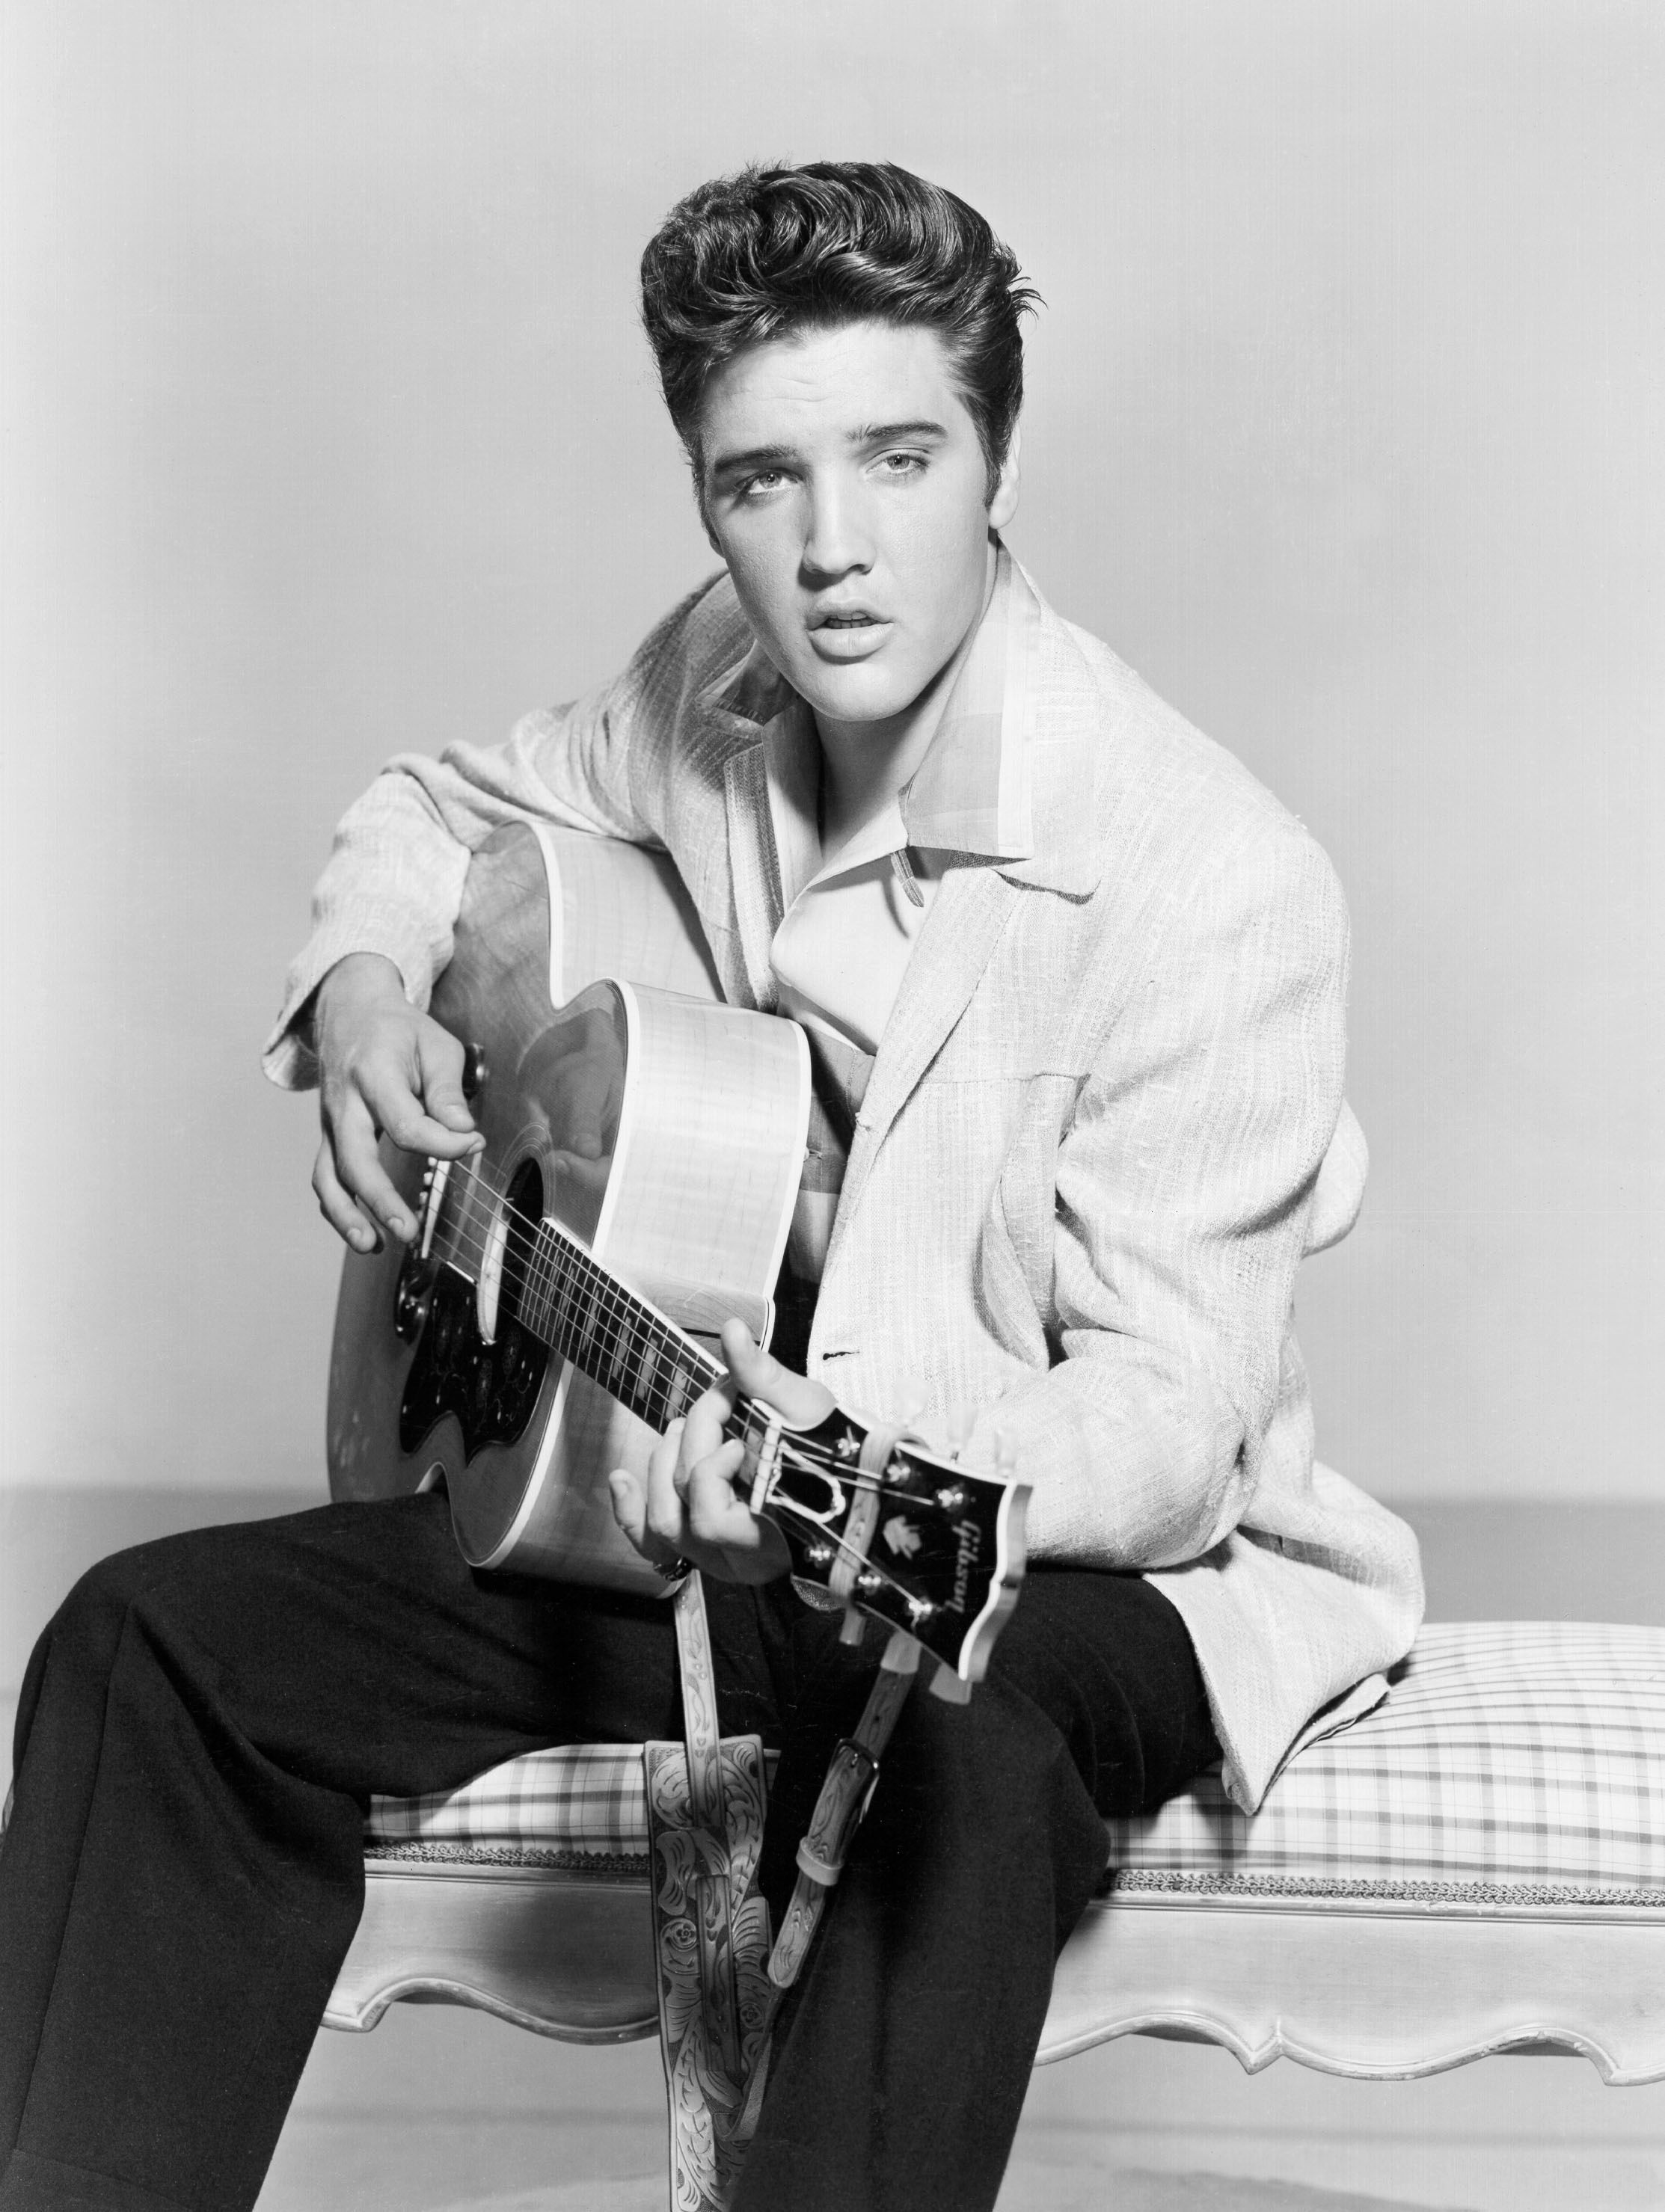 Details of Elvis Presley s Intimate Relationships Revealed in New Book